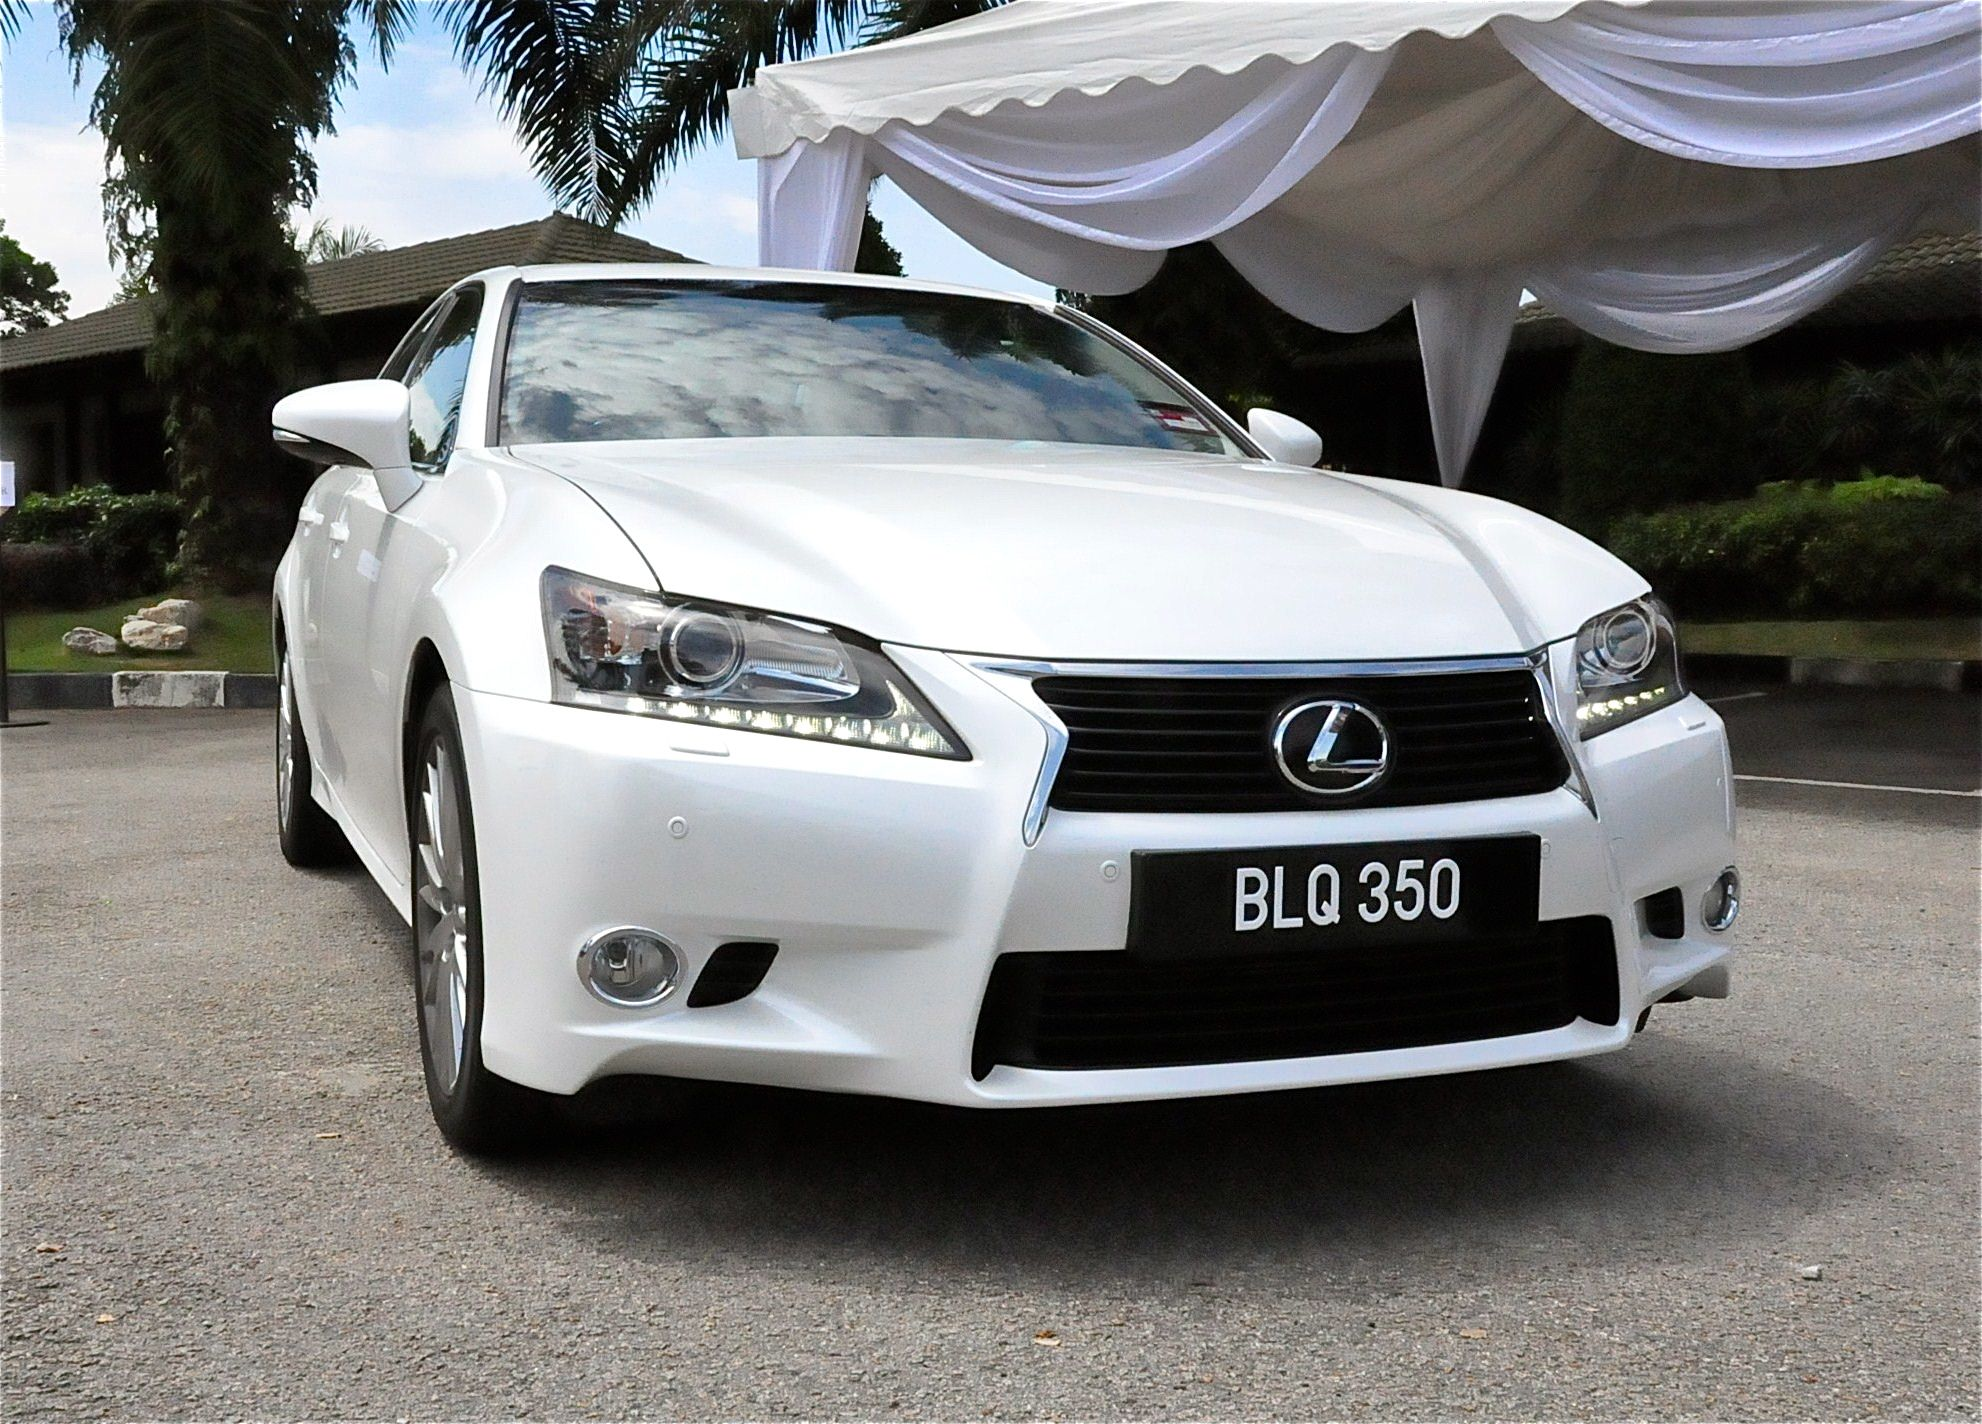 The All New Fourth Generation Lexus GS Has Recently Arrived In The  Malaysian Market With A Wider Range Of Choice Than Before U2013 Two Engine  Sizes With Luxury ...